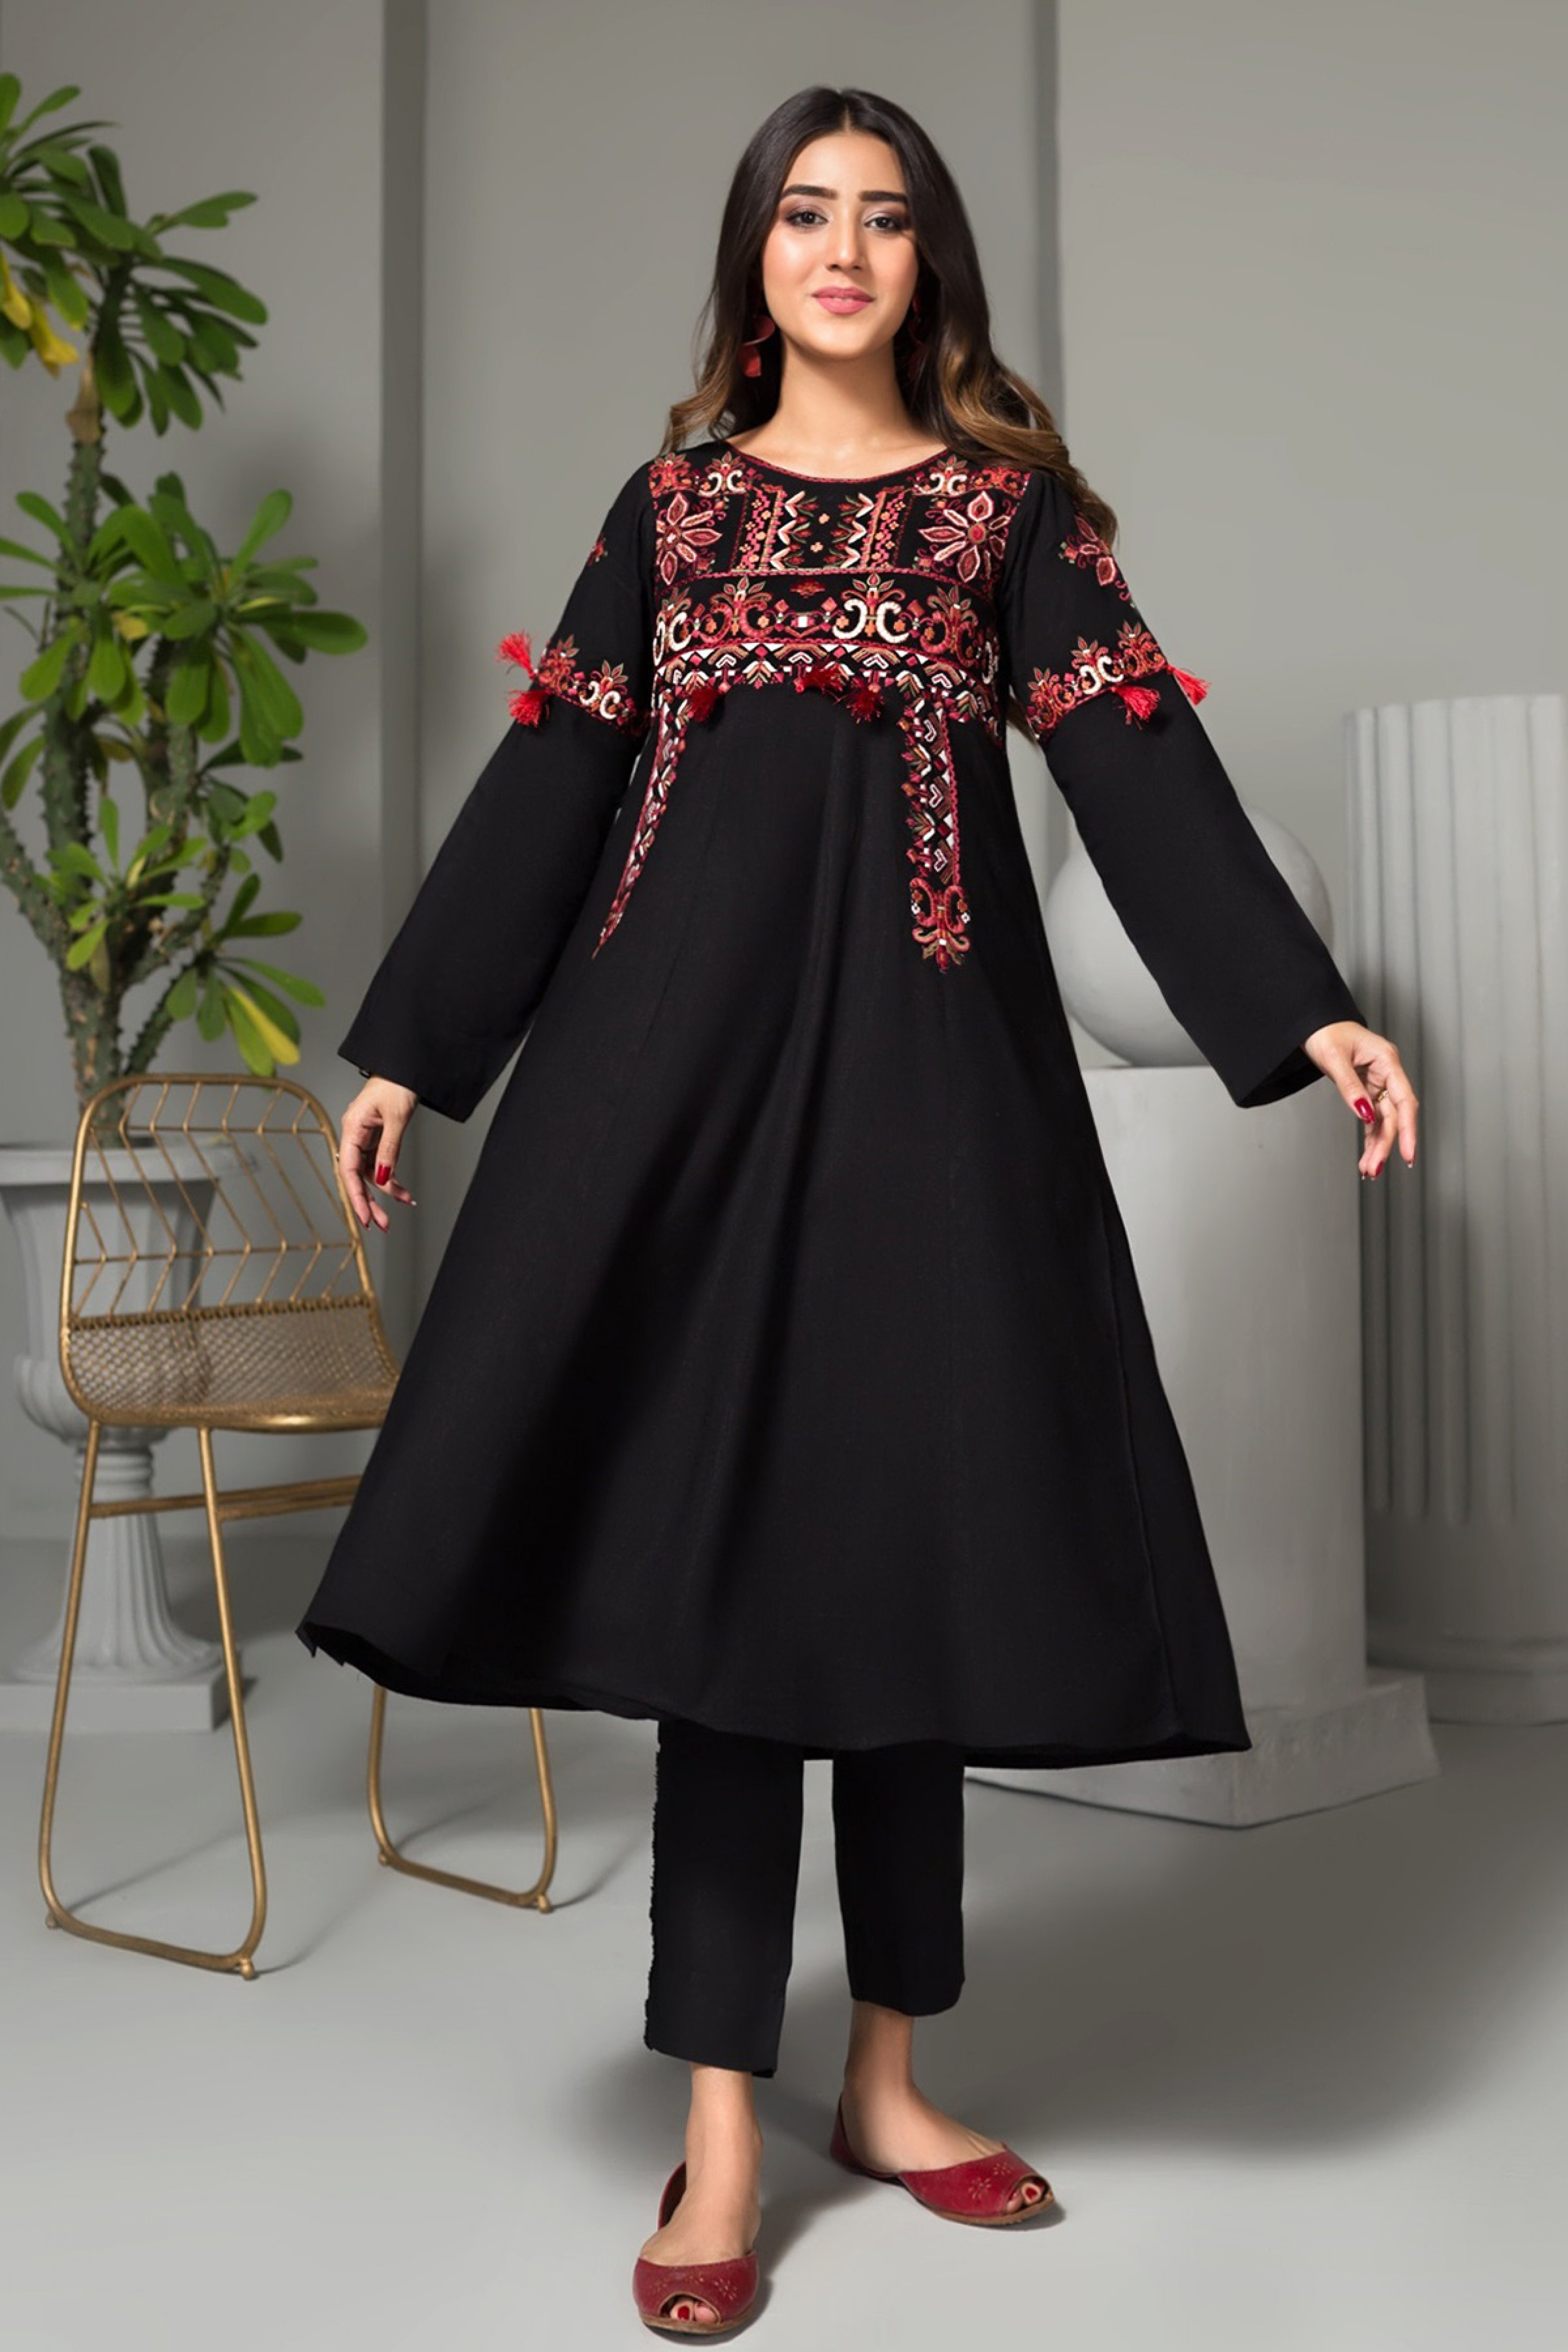 AFTER DARK(Embroidered Frock)